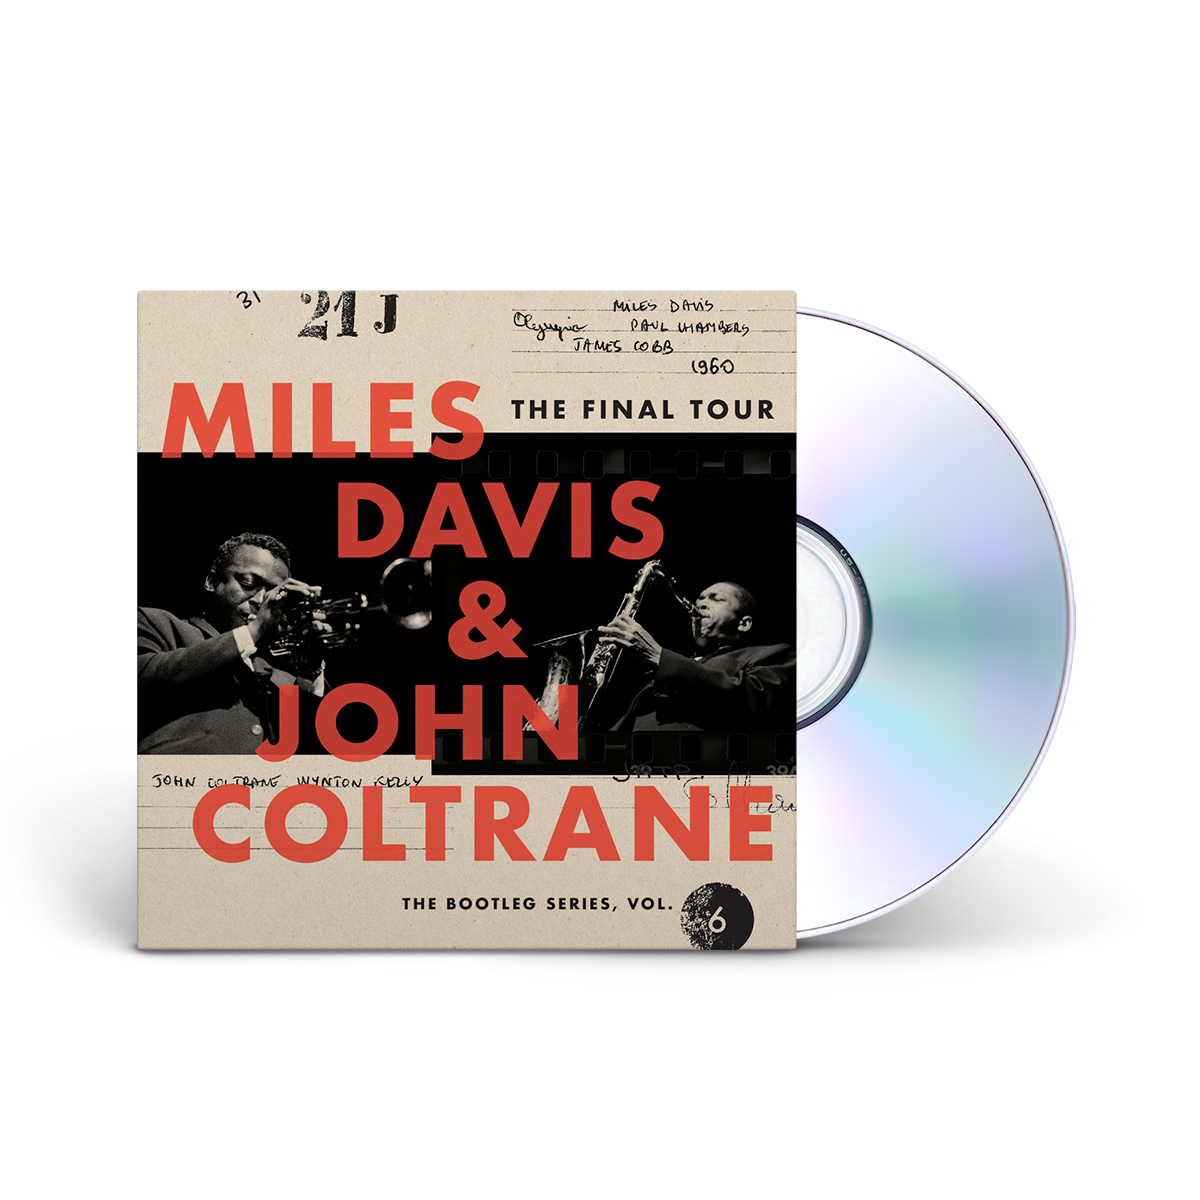 Miles Davis & John Coltrane - The Final Tour: The Bootleg Series, Vol. 6 CD Box Set